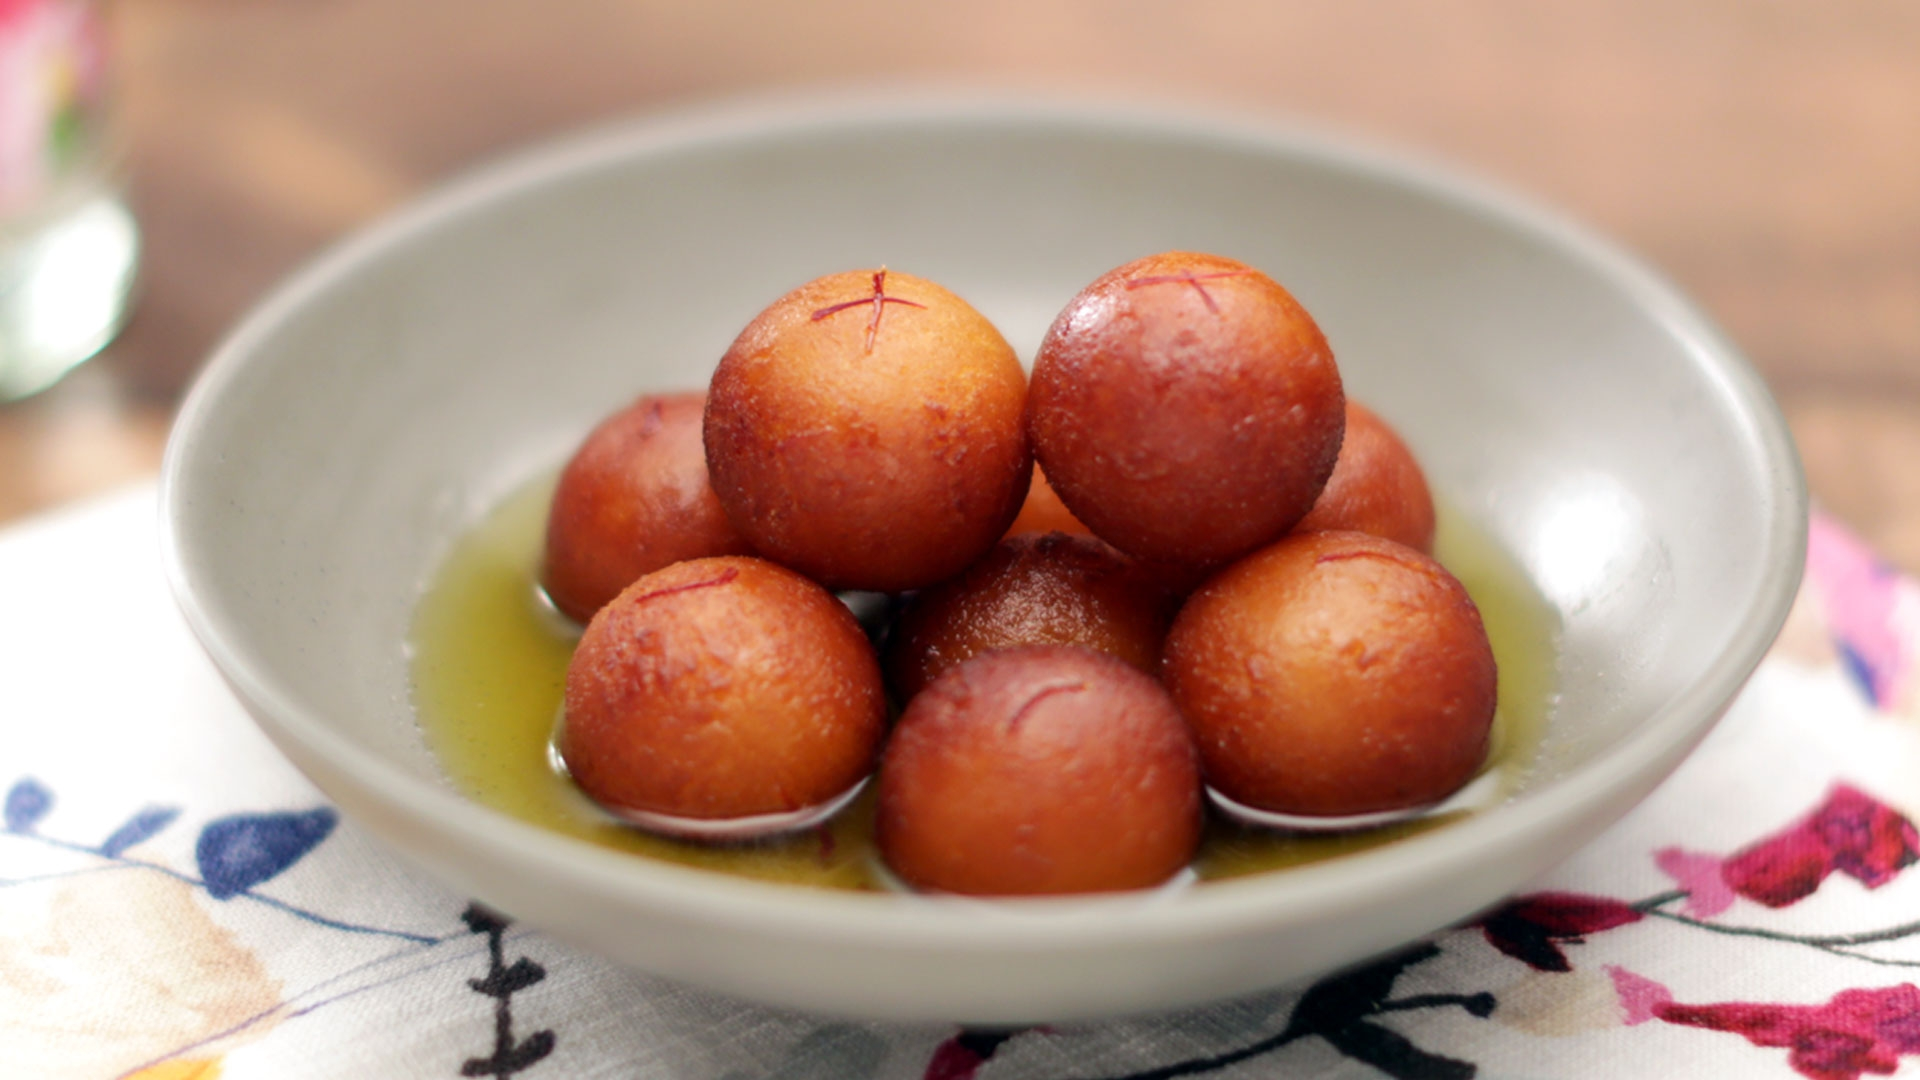 10 Most Popular Indian Desserts to Make and Enjoy